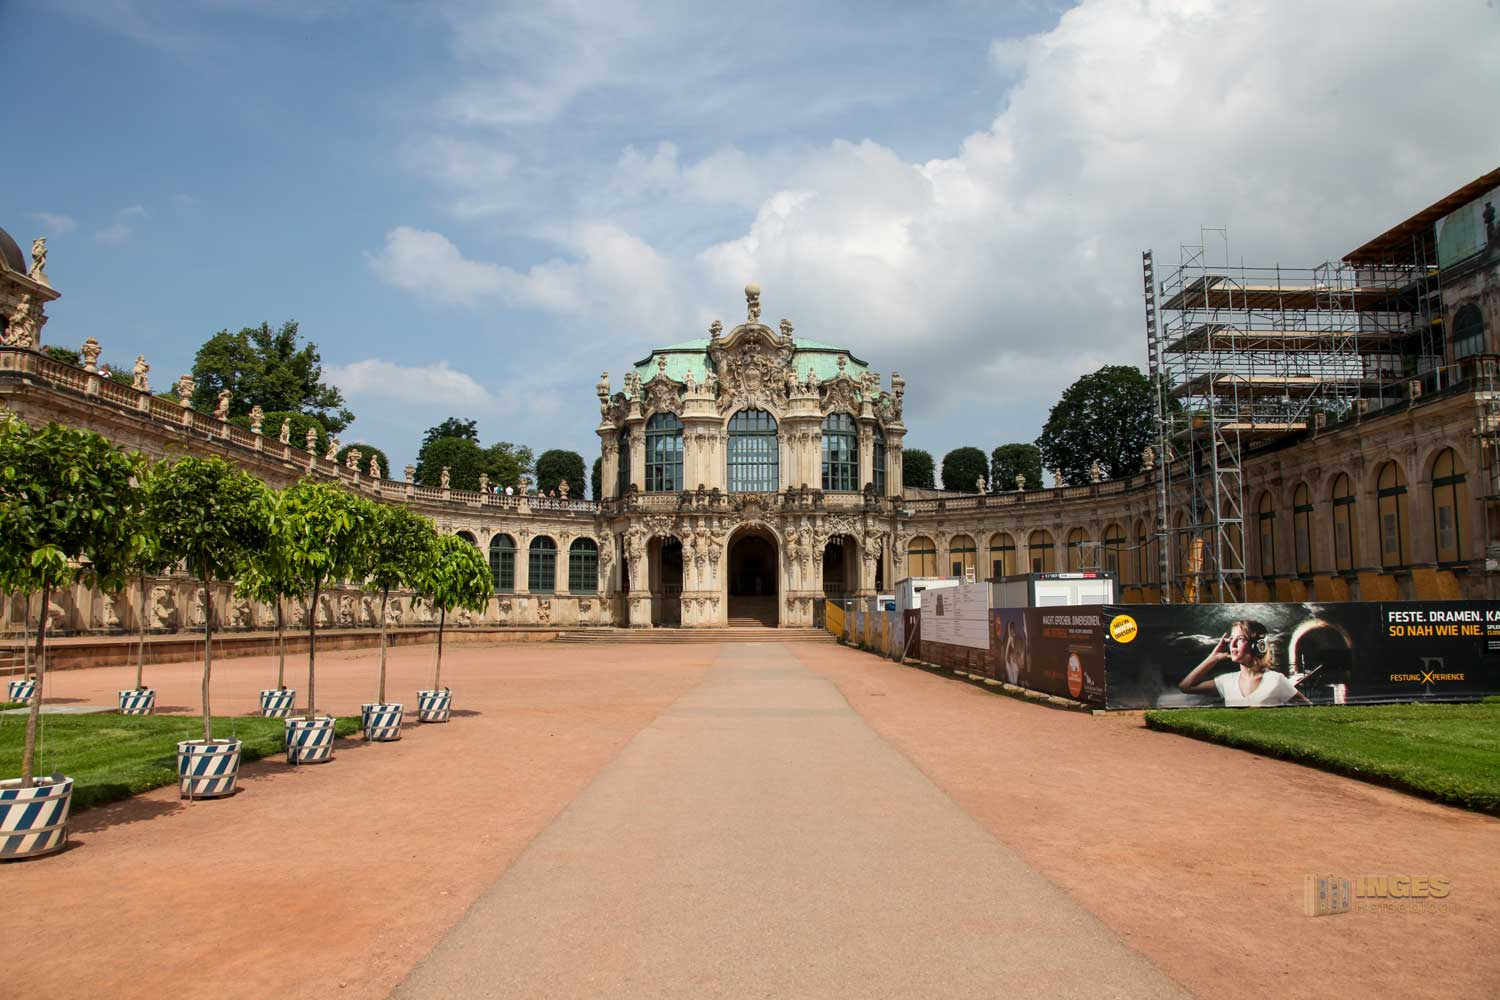 Wallpavillon Zwinger Dresden